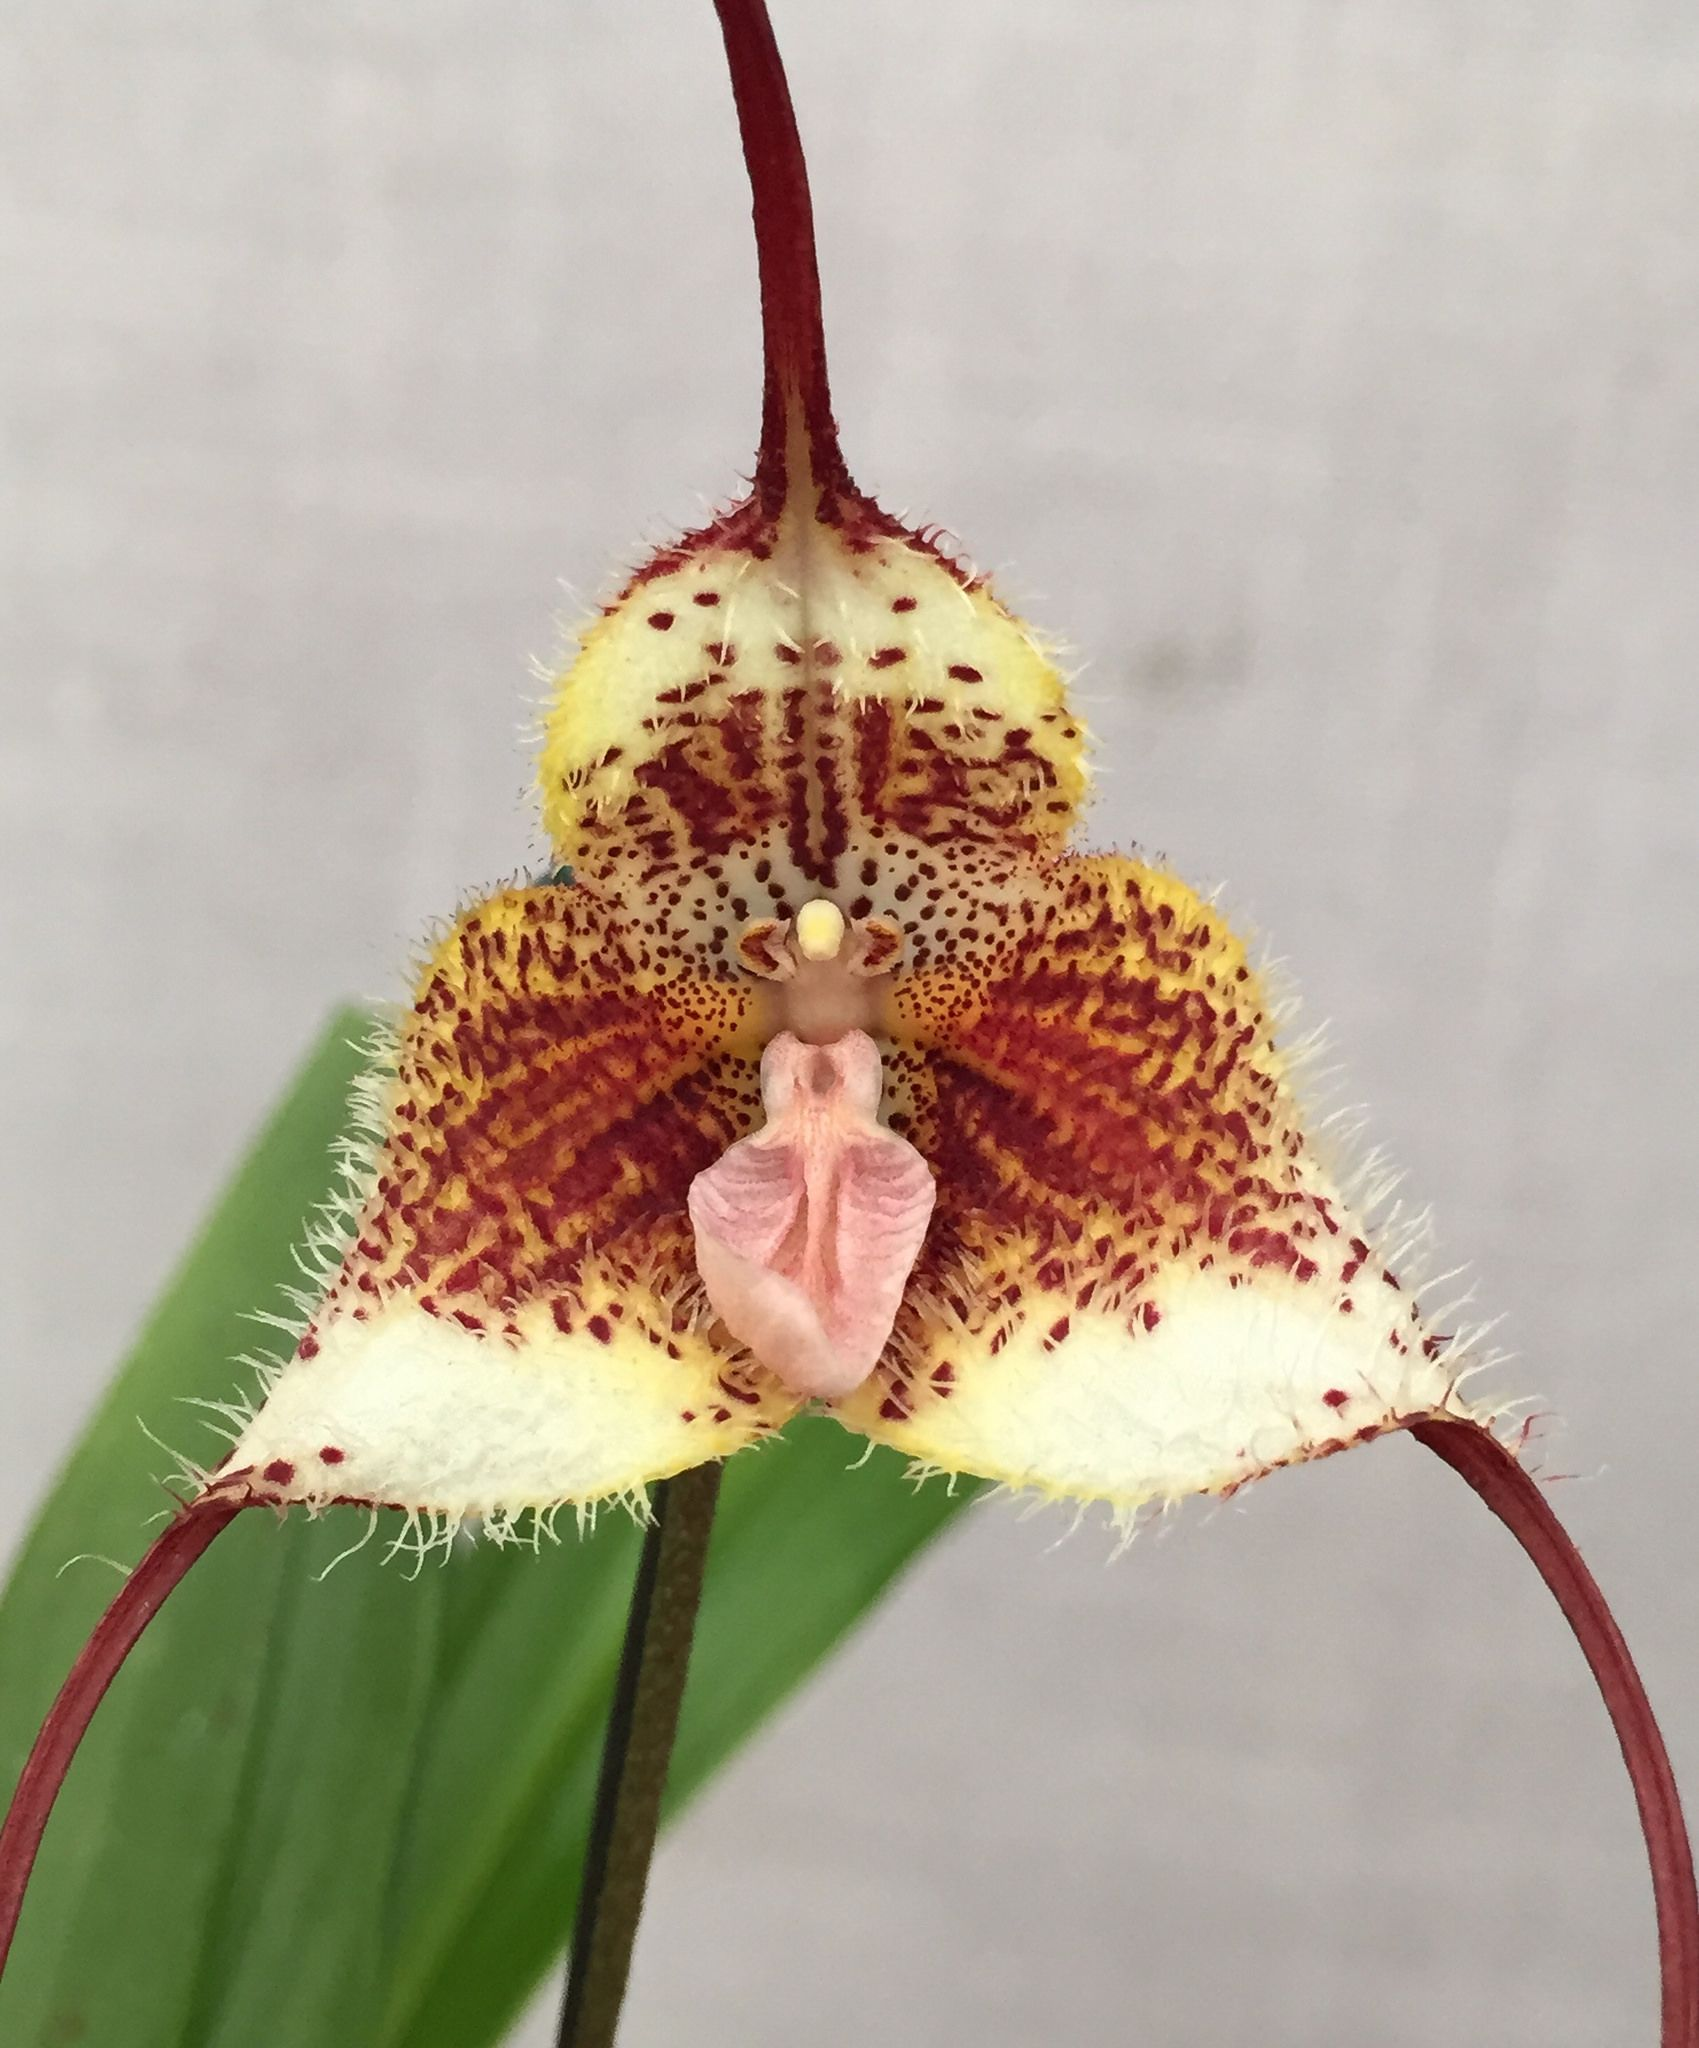 Dracula diana dracula orchid orchidsbyhausermann orchids